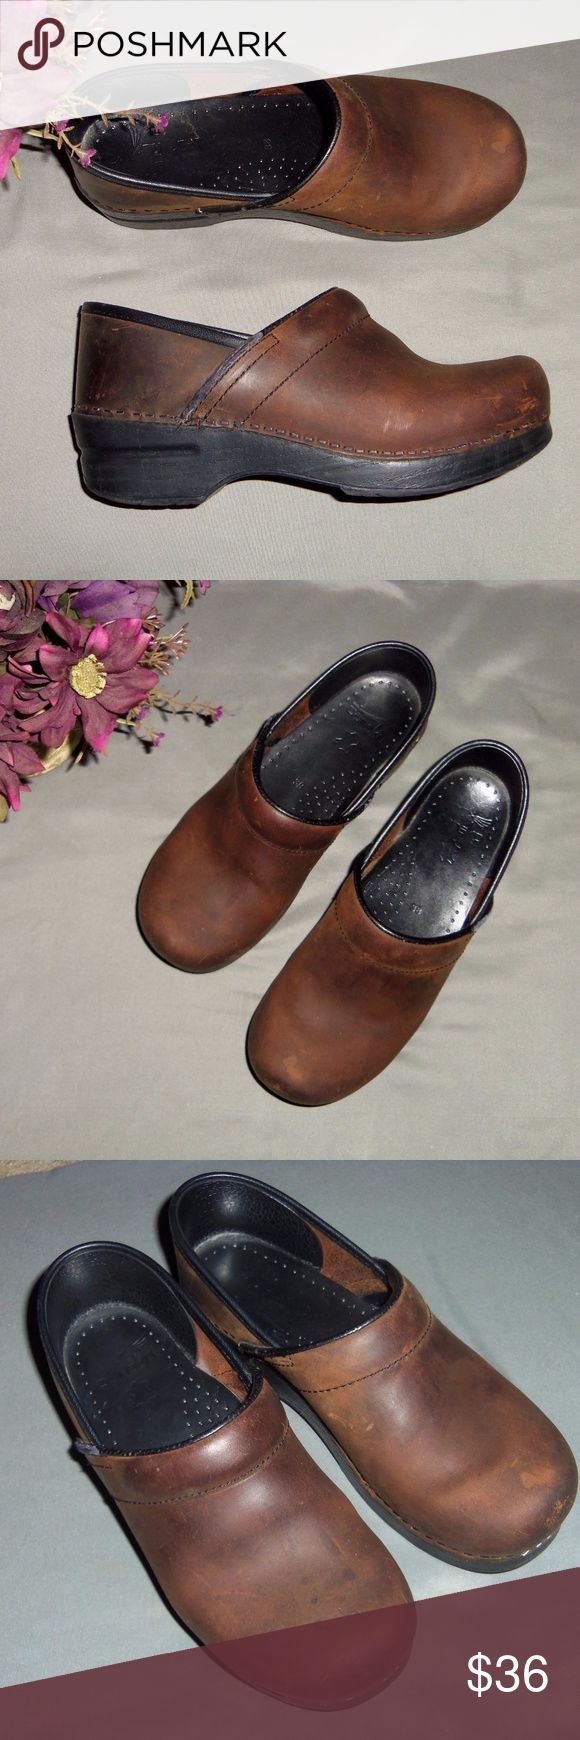 Dankso brown leather medical clogs EUR 38 Nice pair of Danskos in brown matte leather. Great for those in the medical profession and on their feet for hours. Awesome brand name shoes!! Show minor wear, see all pictures! Dansko Shoes Mules & Clogs